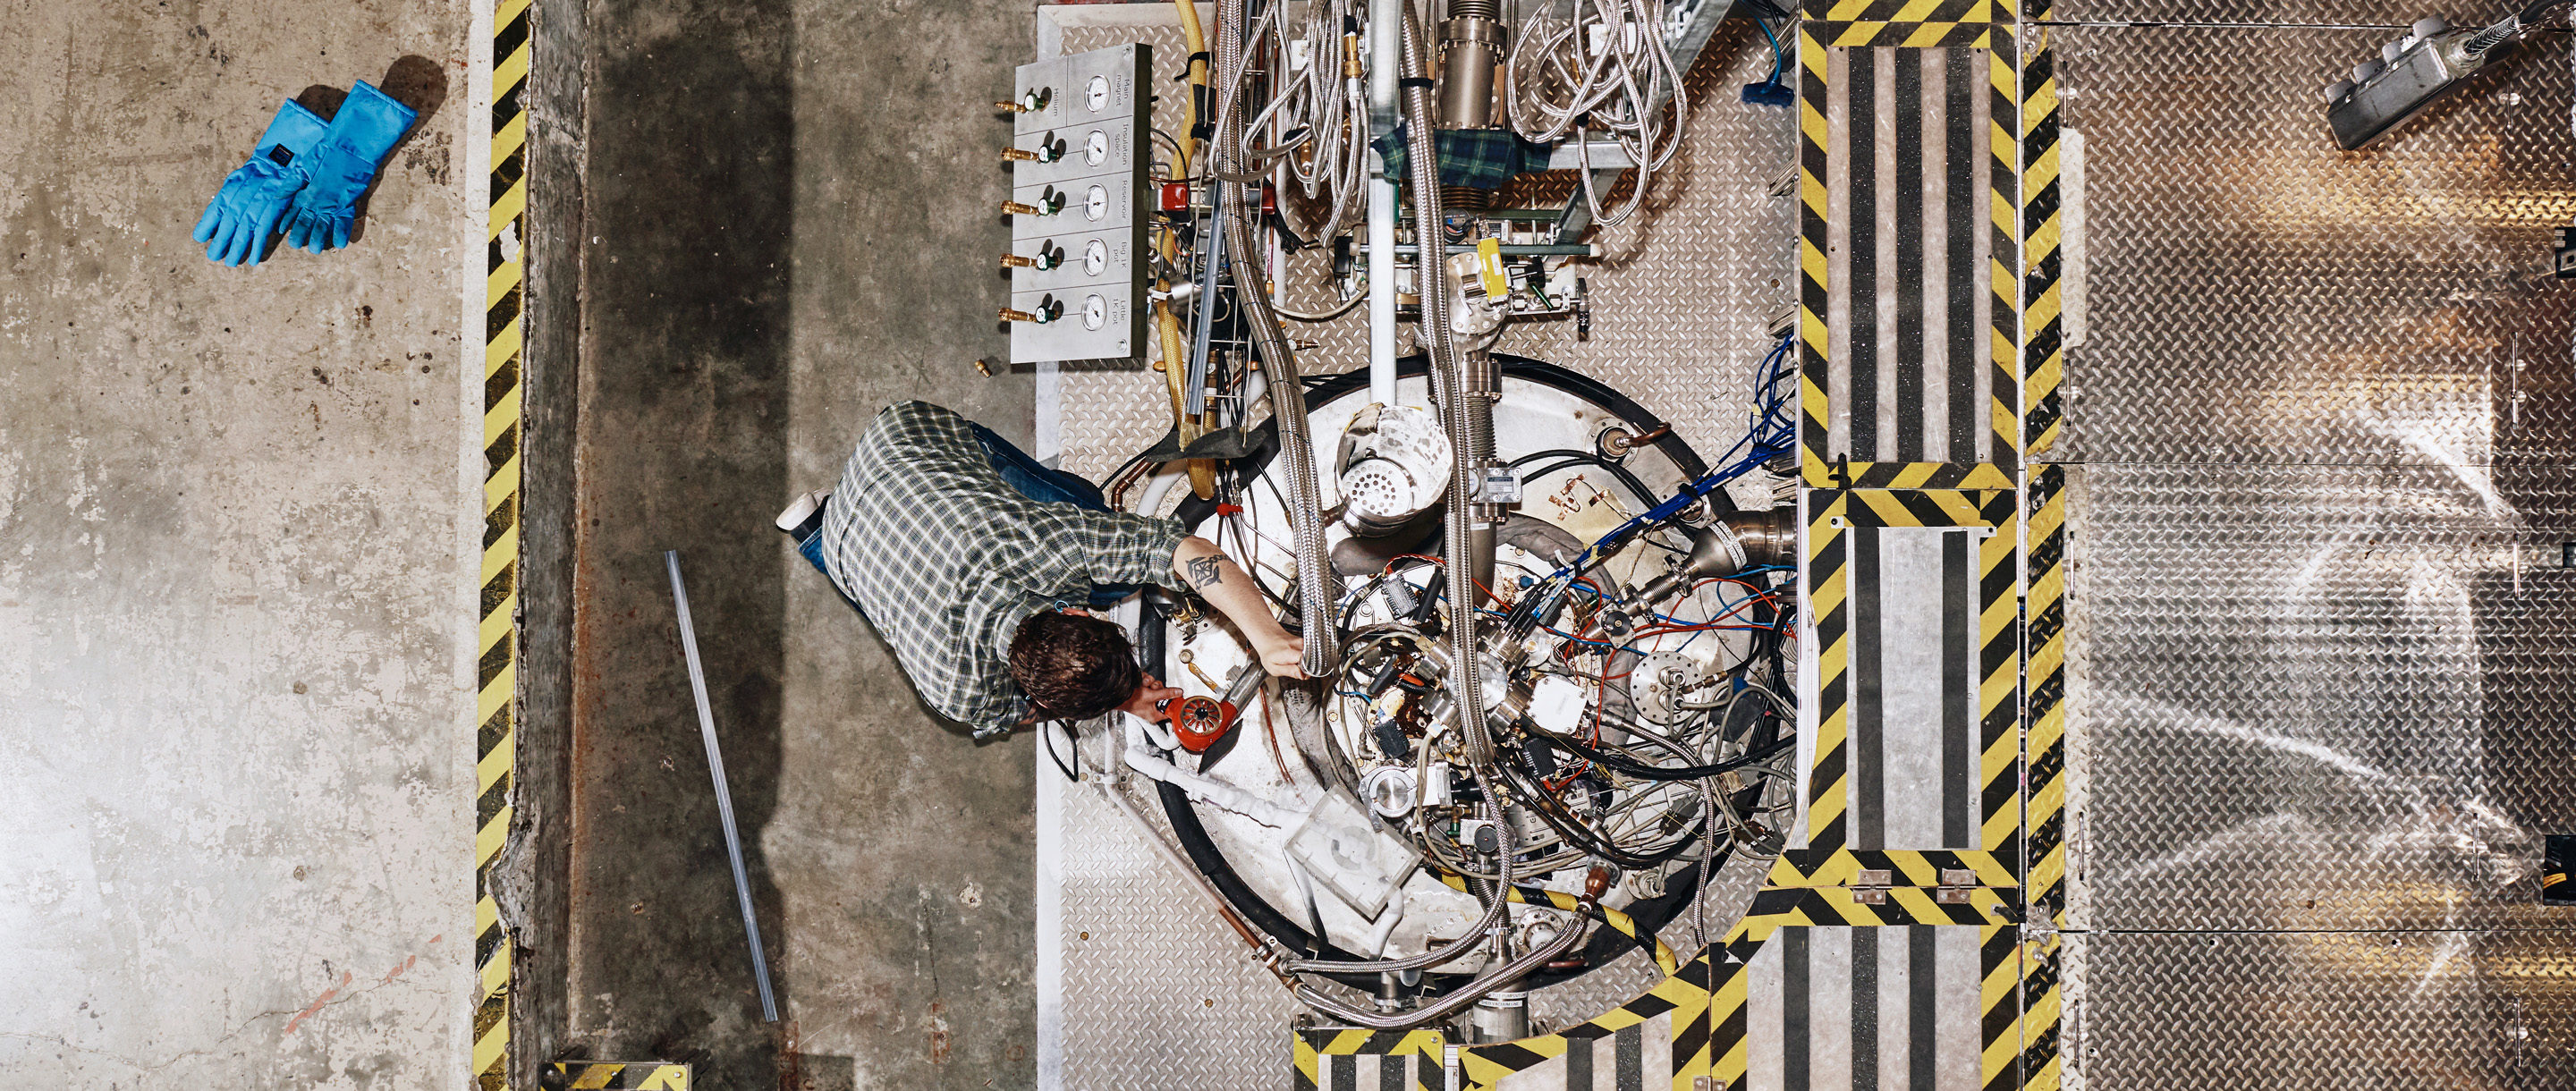 An overhead shot of an engineer working on a metal tank with pipes and cables coming out of it.